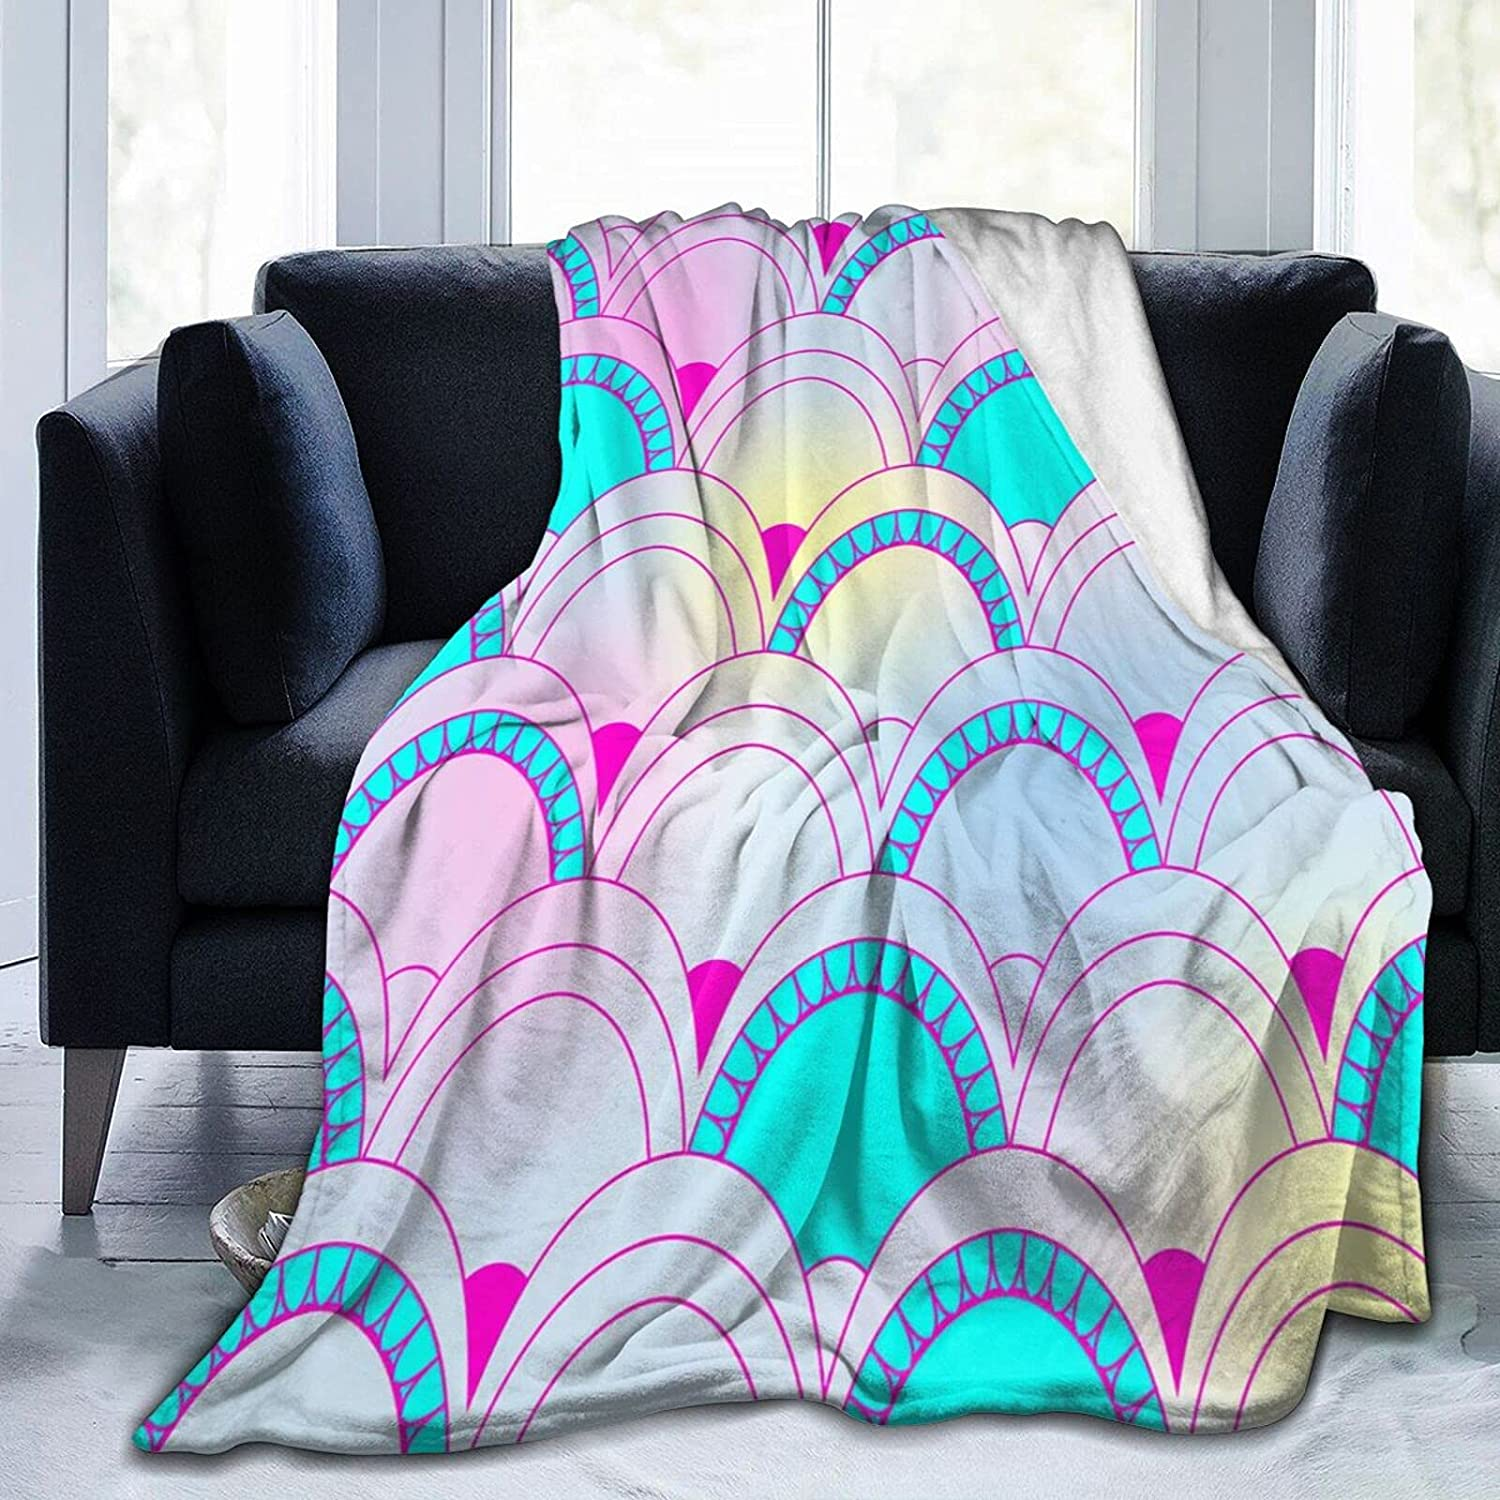 3D Printing Max 48% OFF Colorful Mermaid Fish Scales 2021 new Fleece Ultra-So Blanket